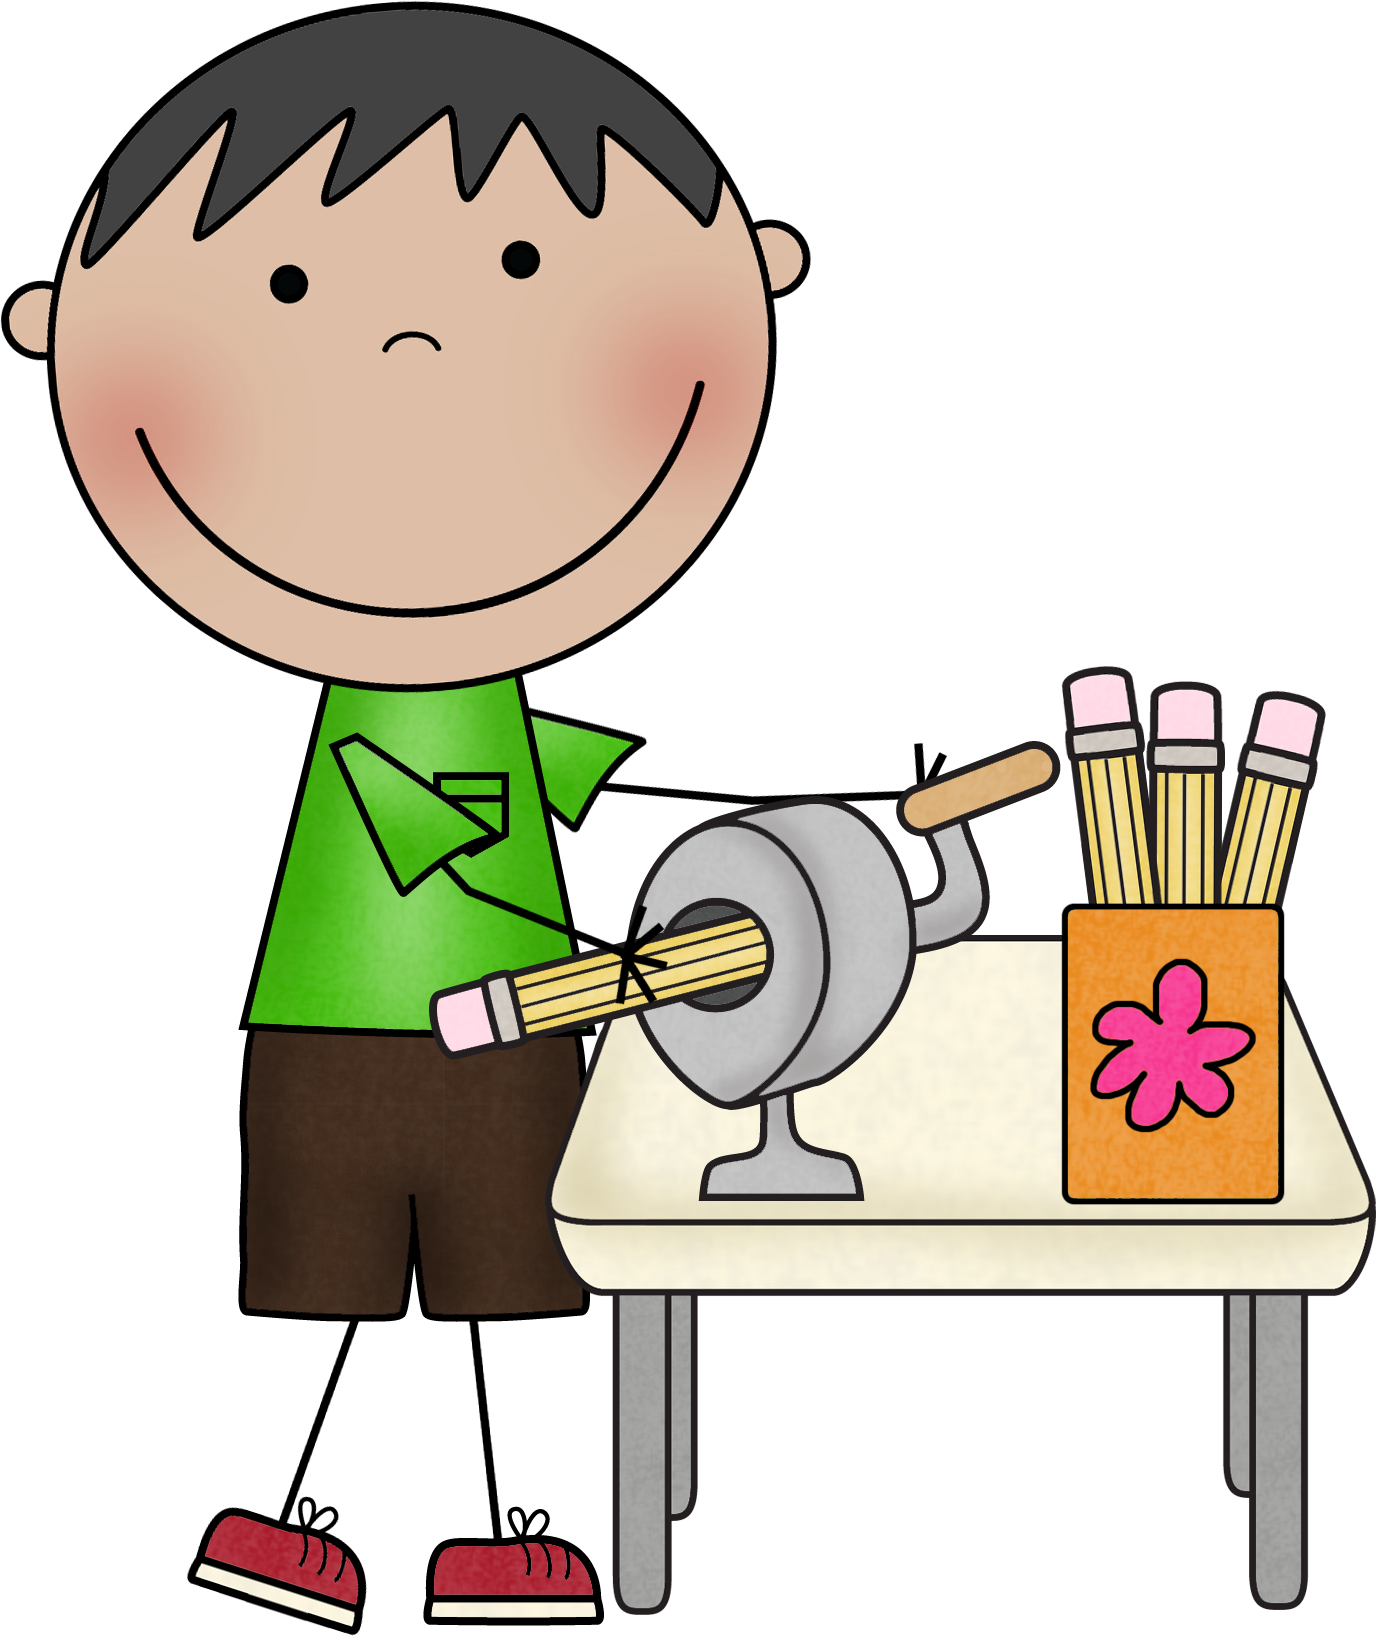 Classroom Pencil Sharpener .  - Pencil Sharpener Clipart